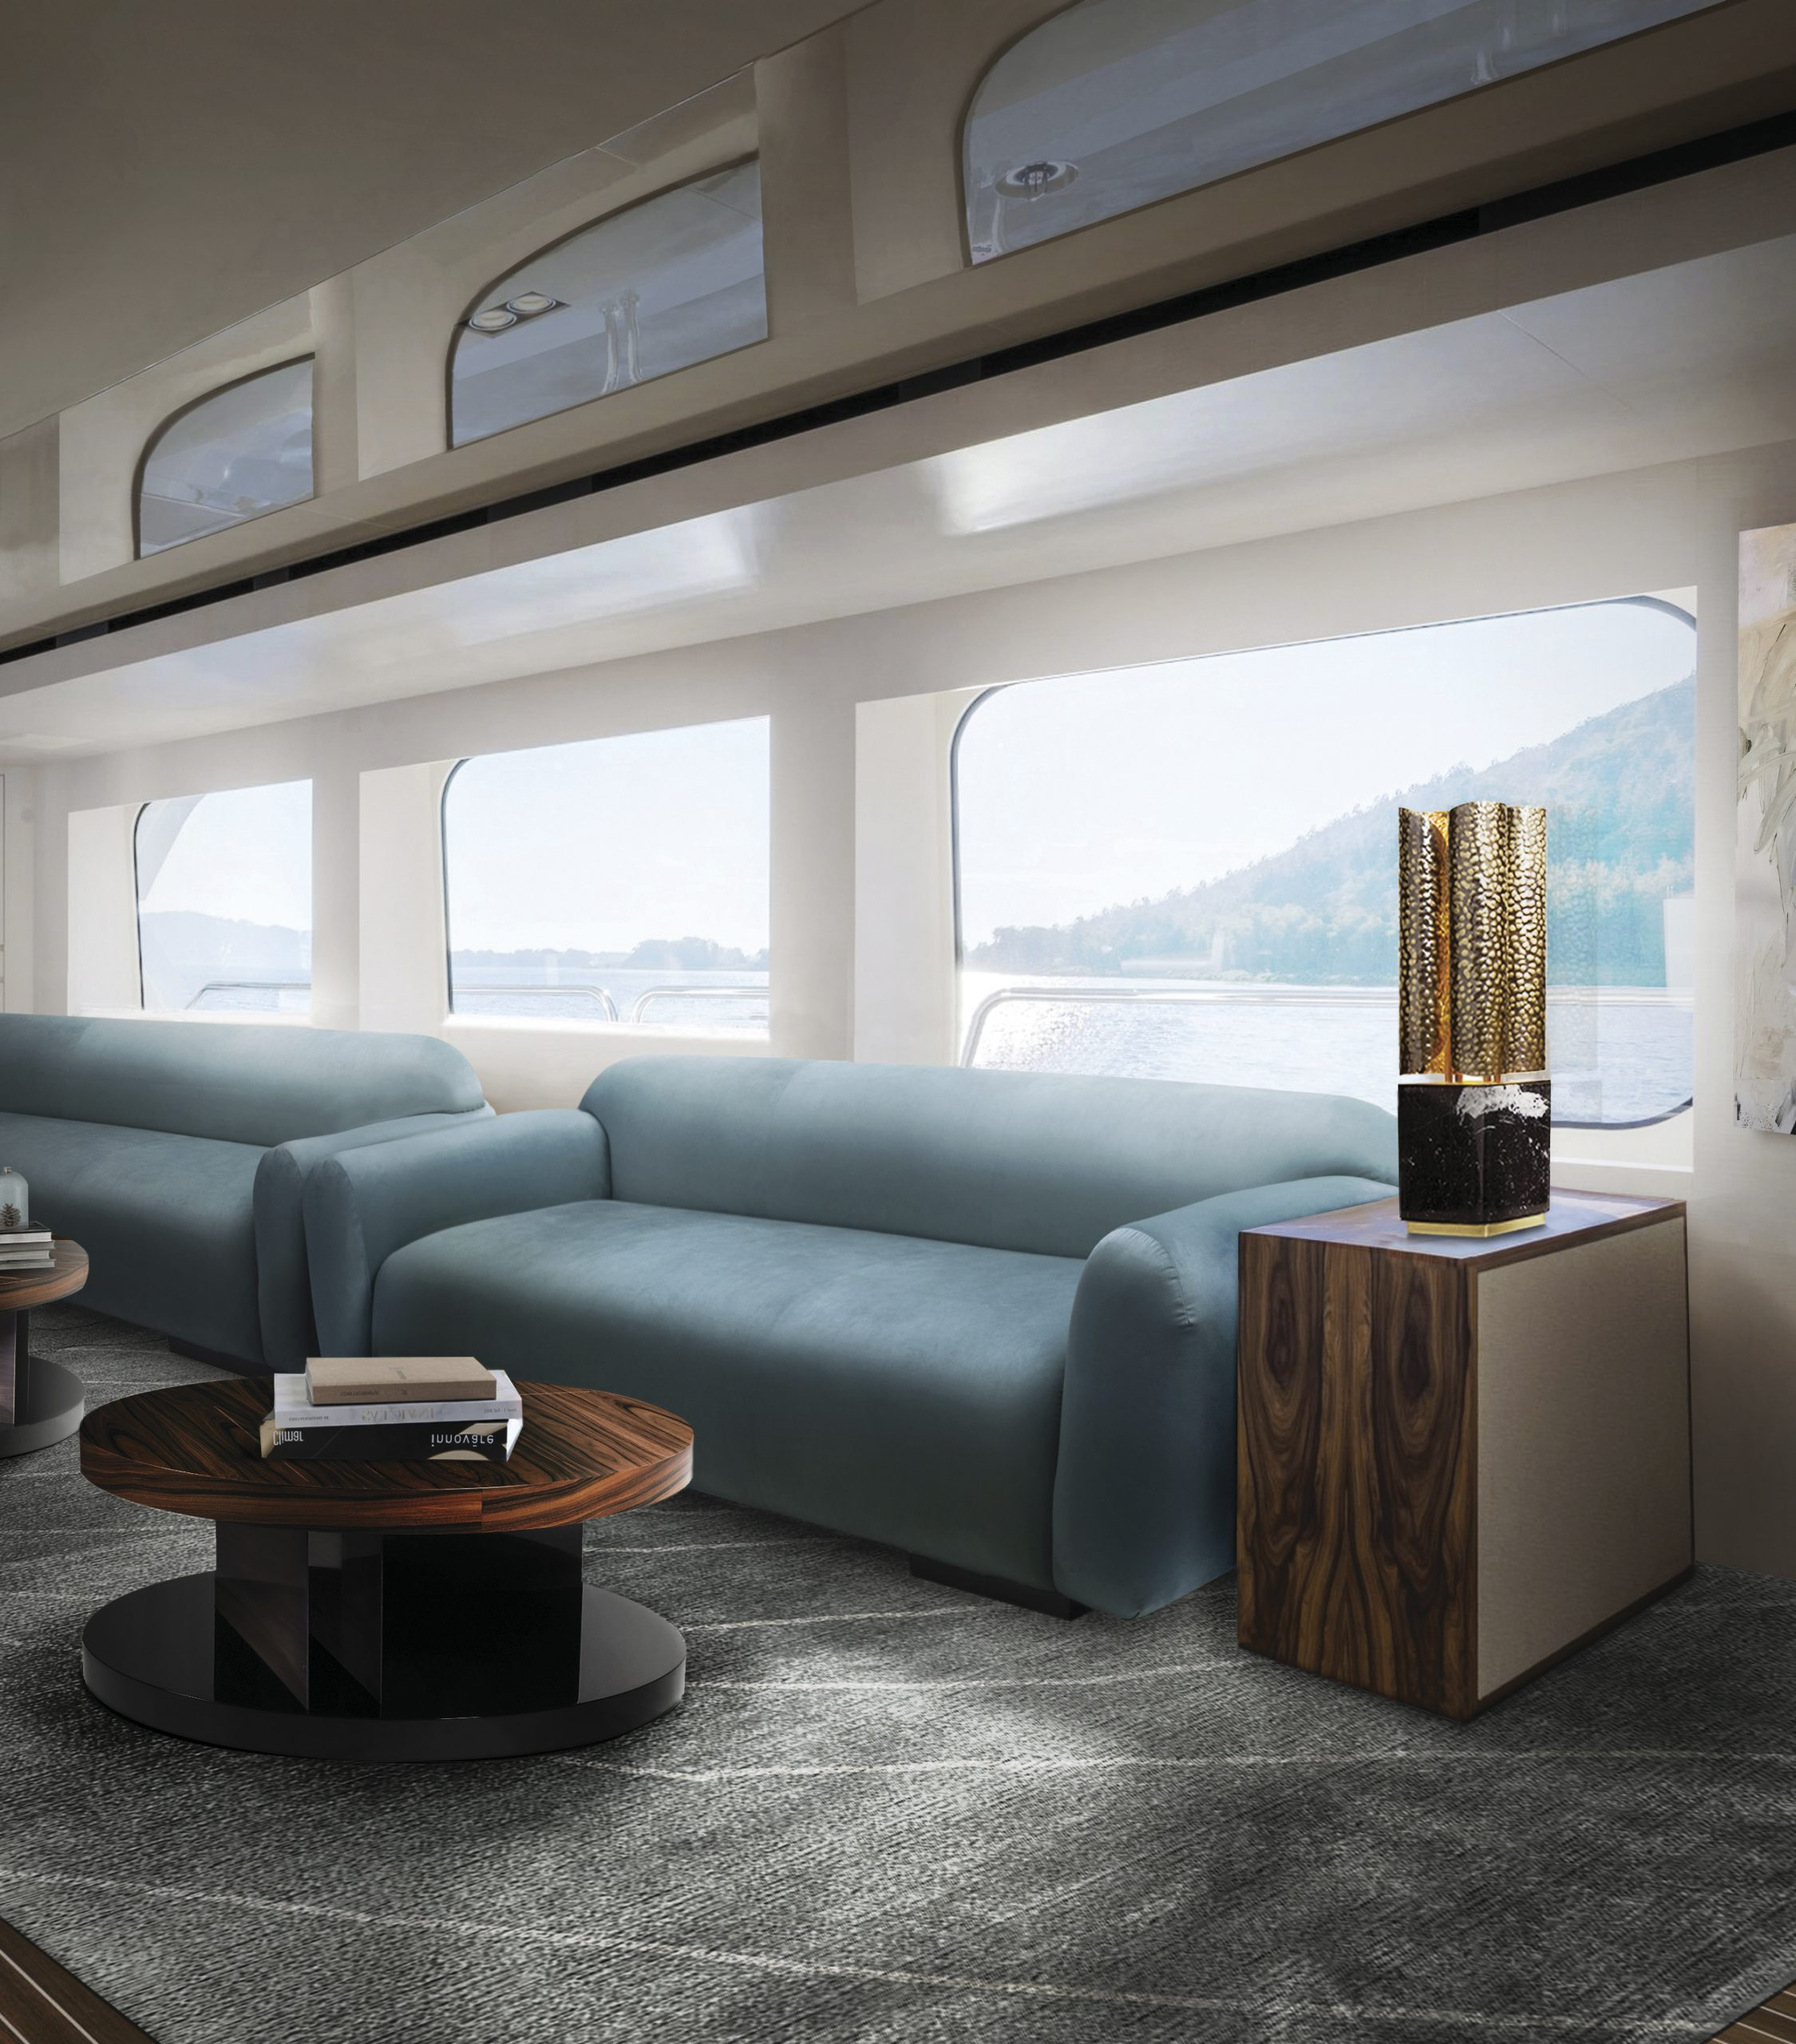 Blue Sofas That Will Refresh Your Home Decor blue sofas Blue Sofas That Will Refresh Your Home Decor amb BB yacht scaled